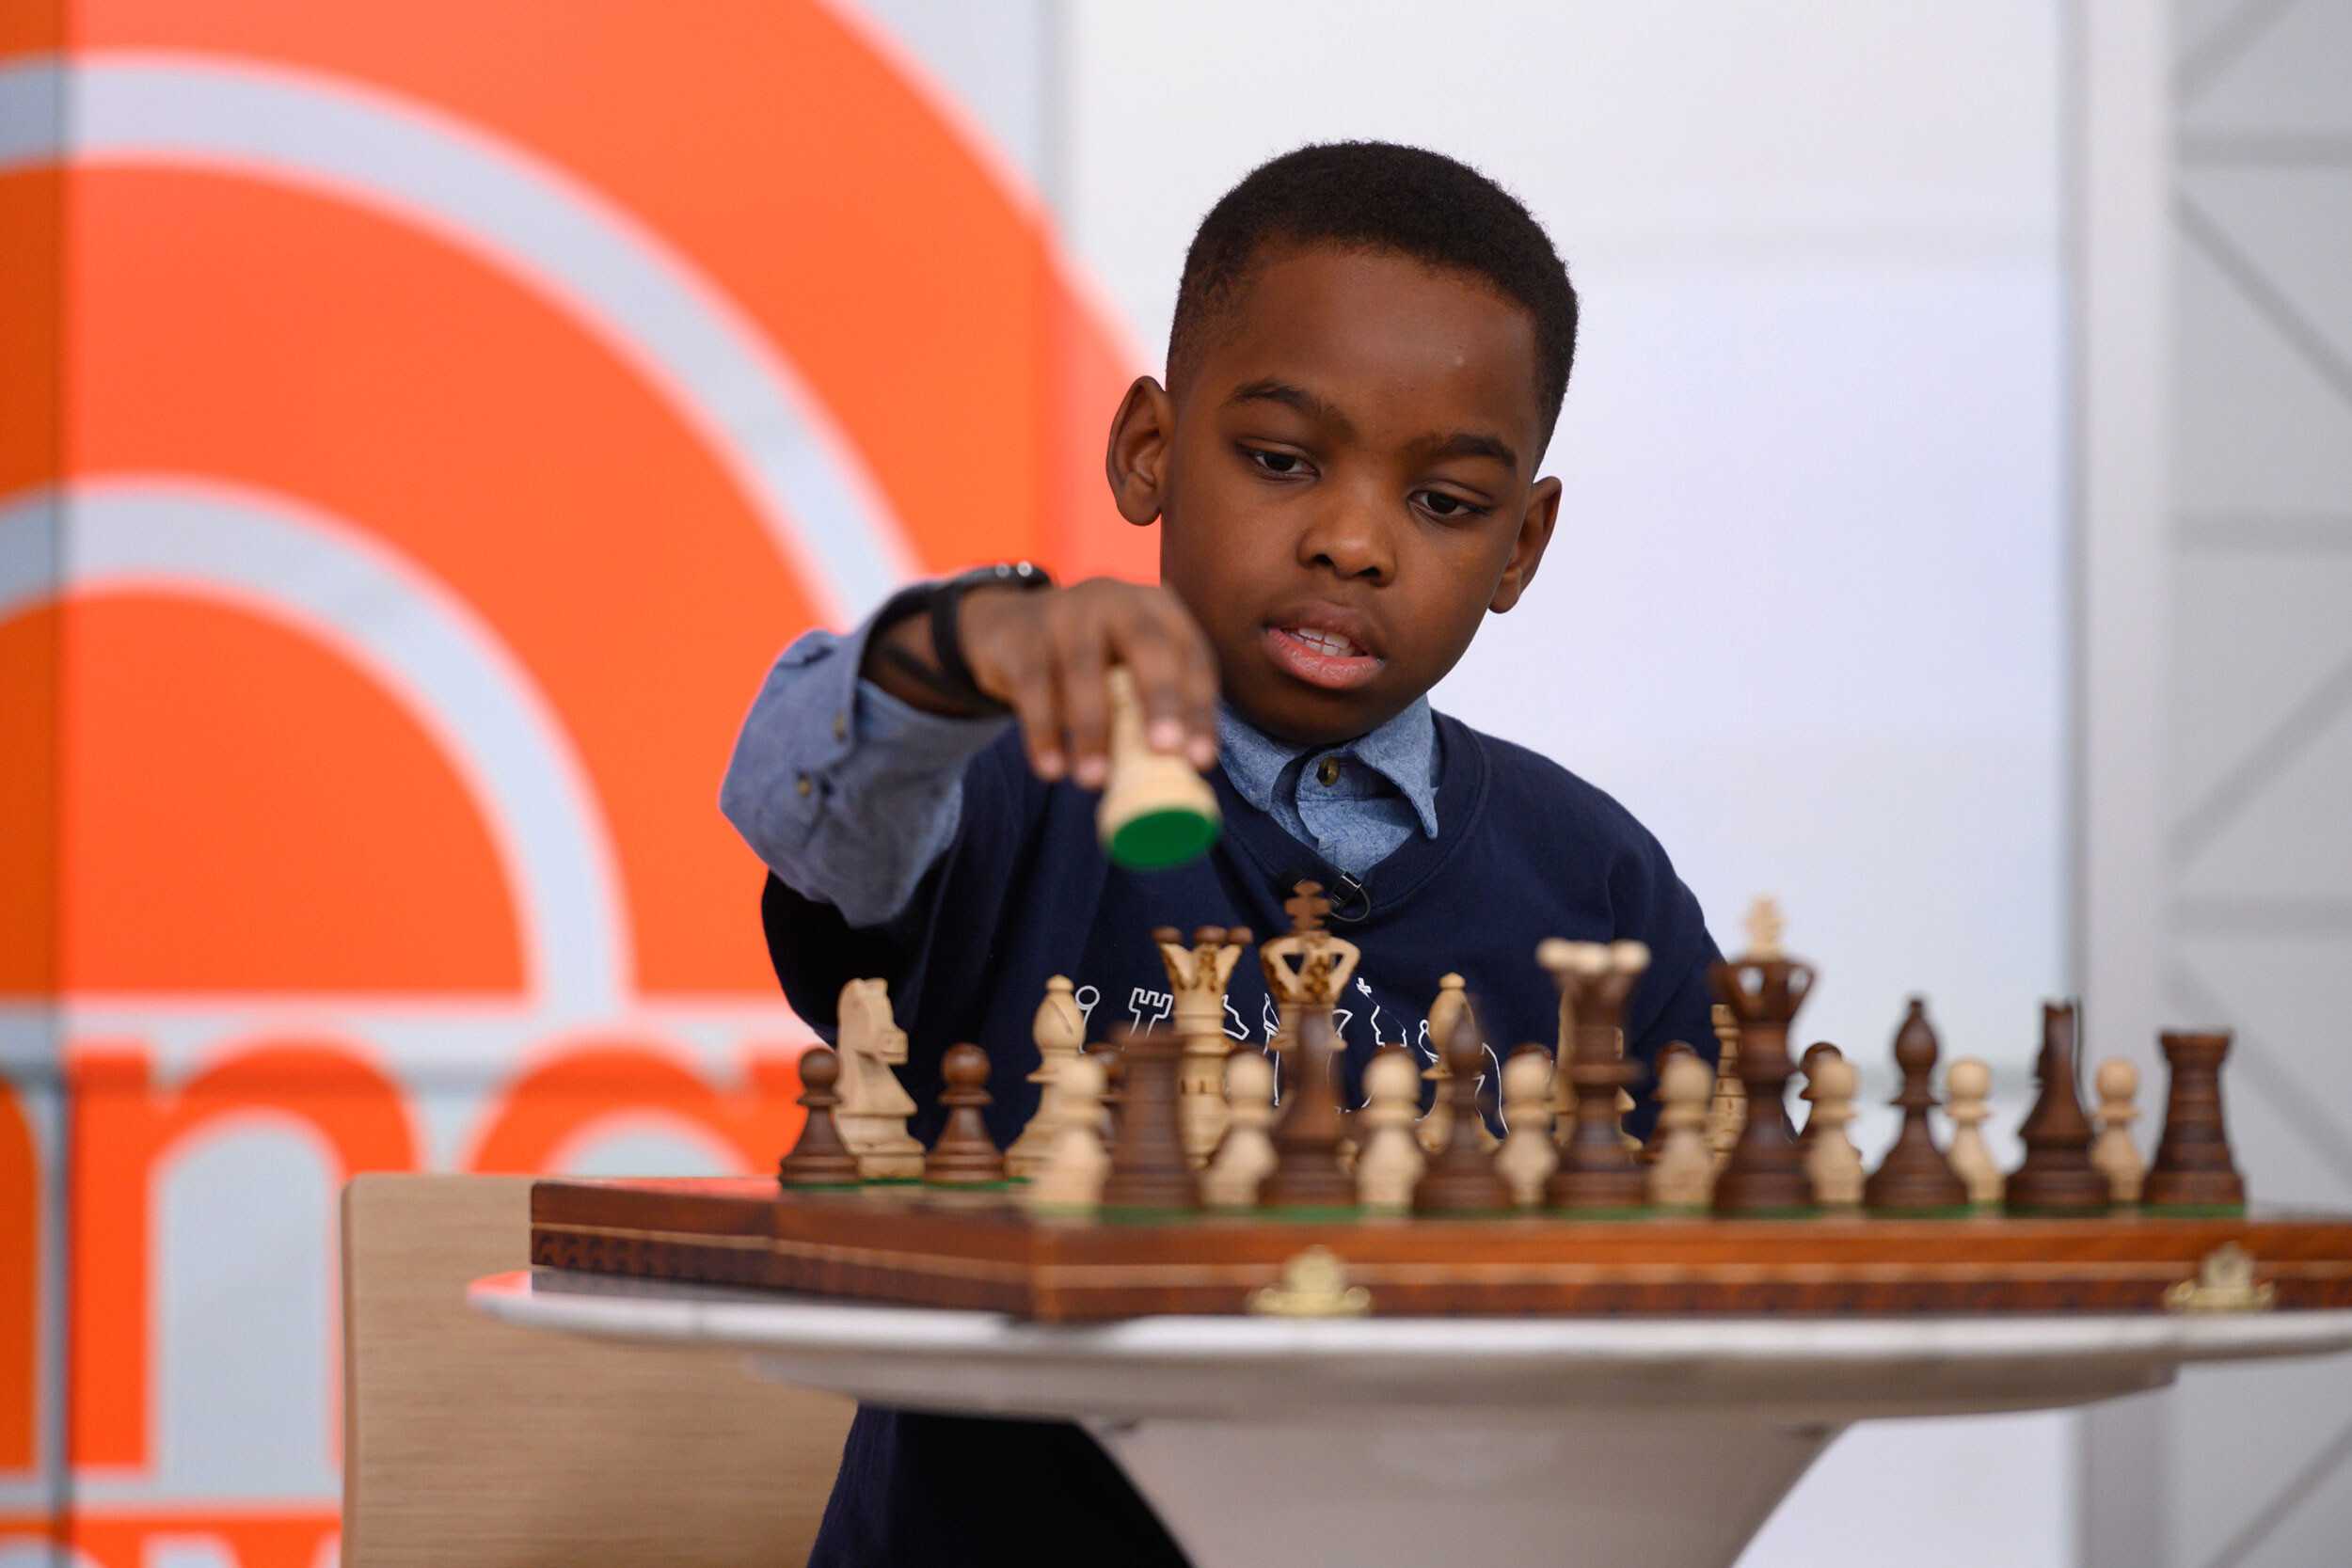 Tani Adewumi: How chess changed the fortunes of 11-year-old prodigy and his family